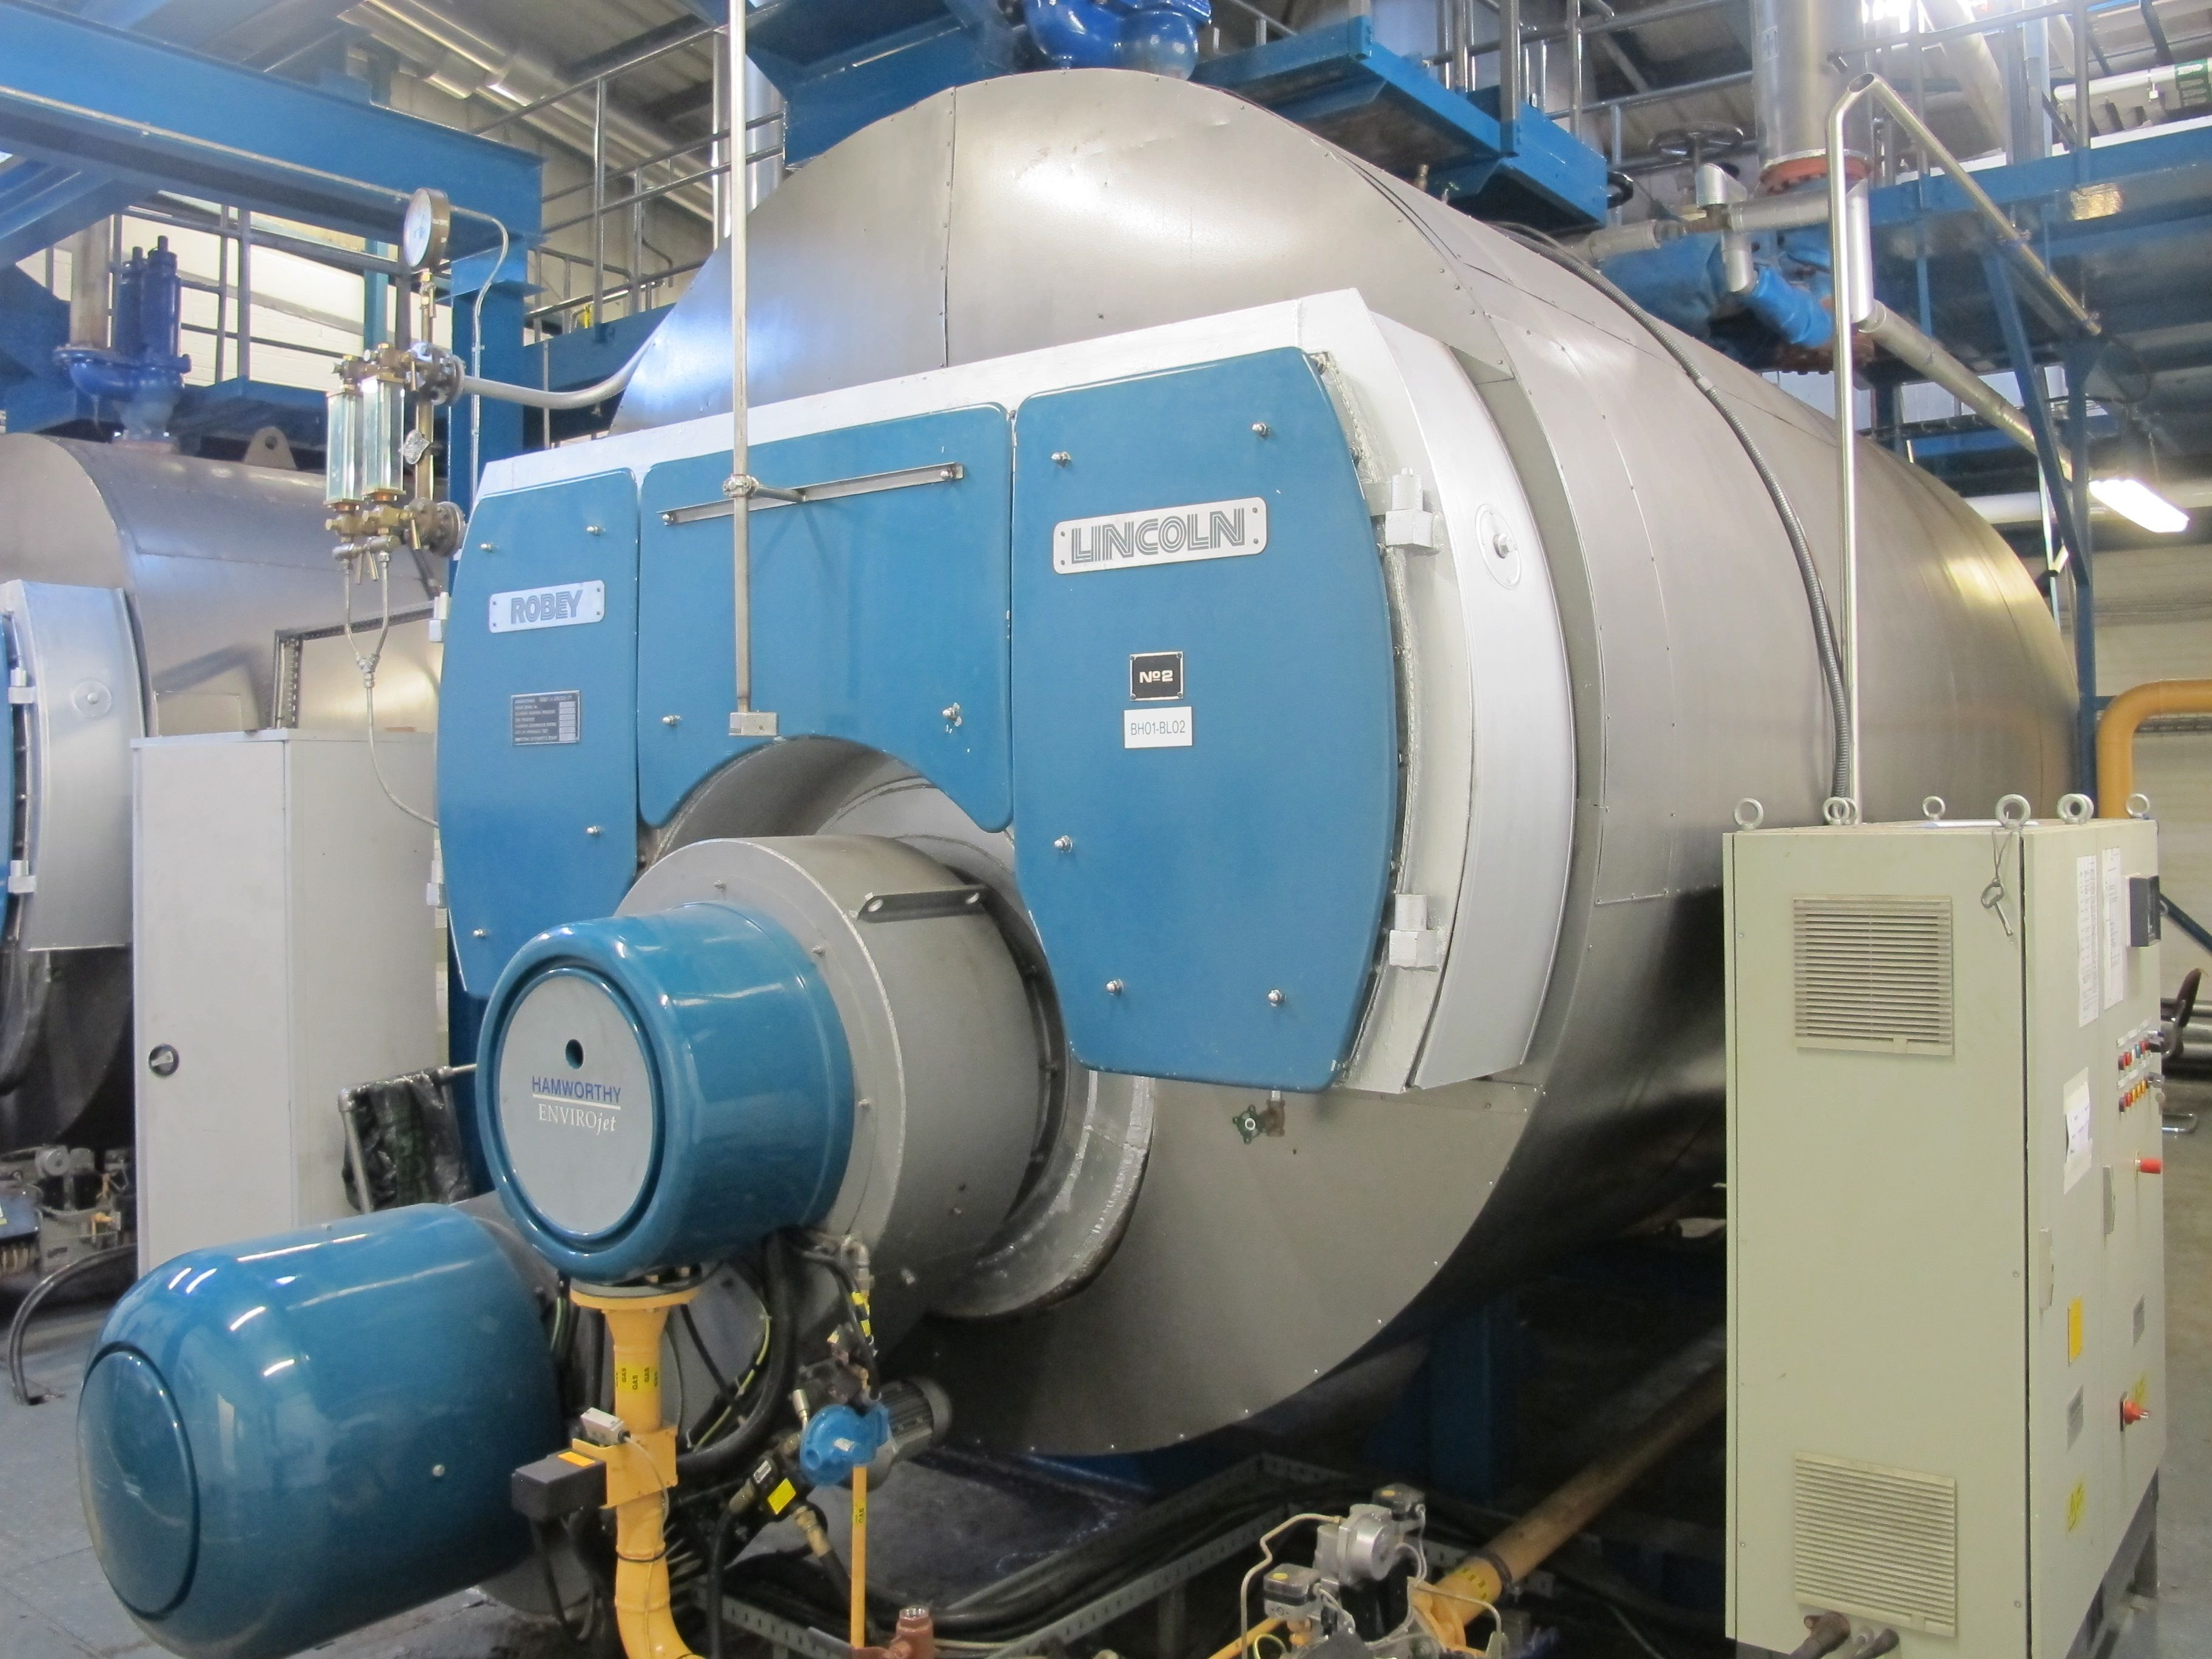 Robey Lincoln boiler | Industrial Boilers | Pinterest